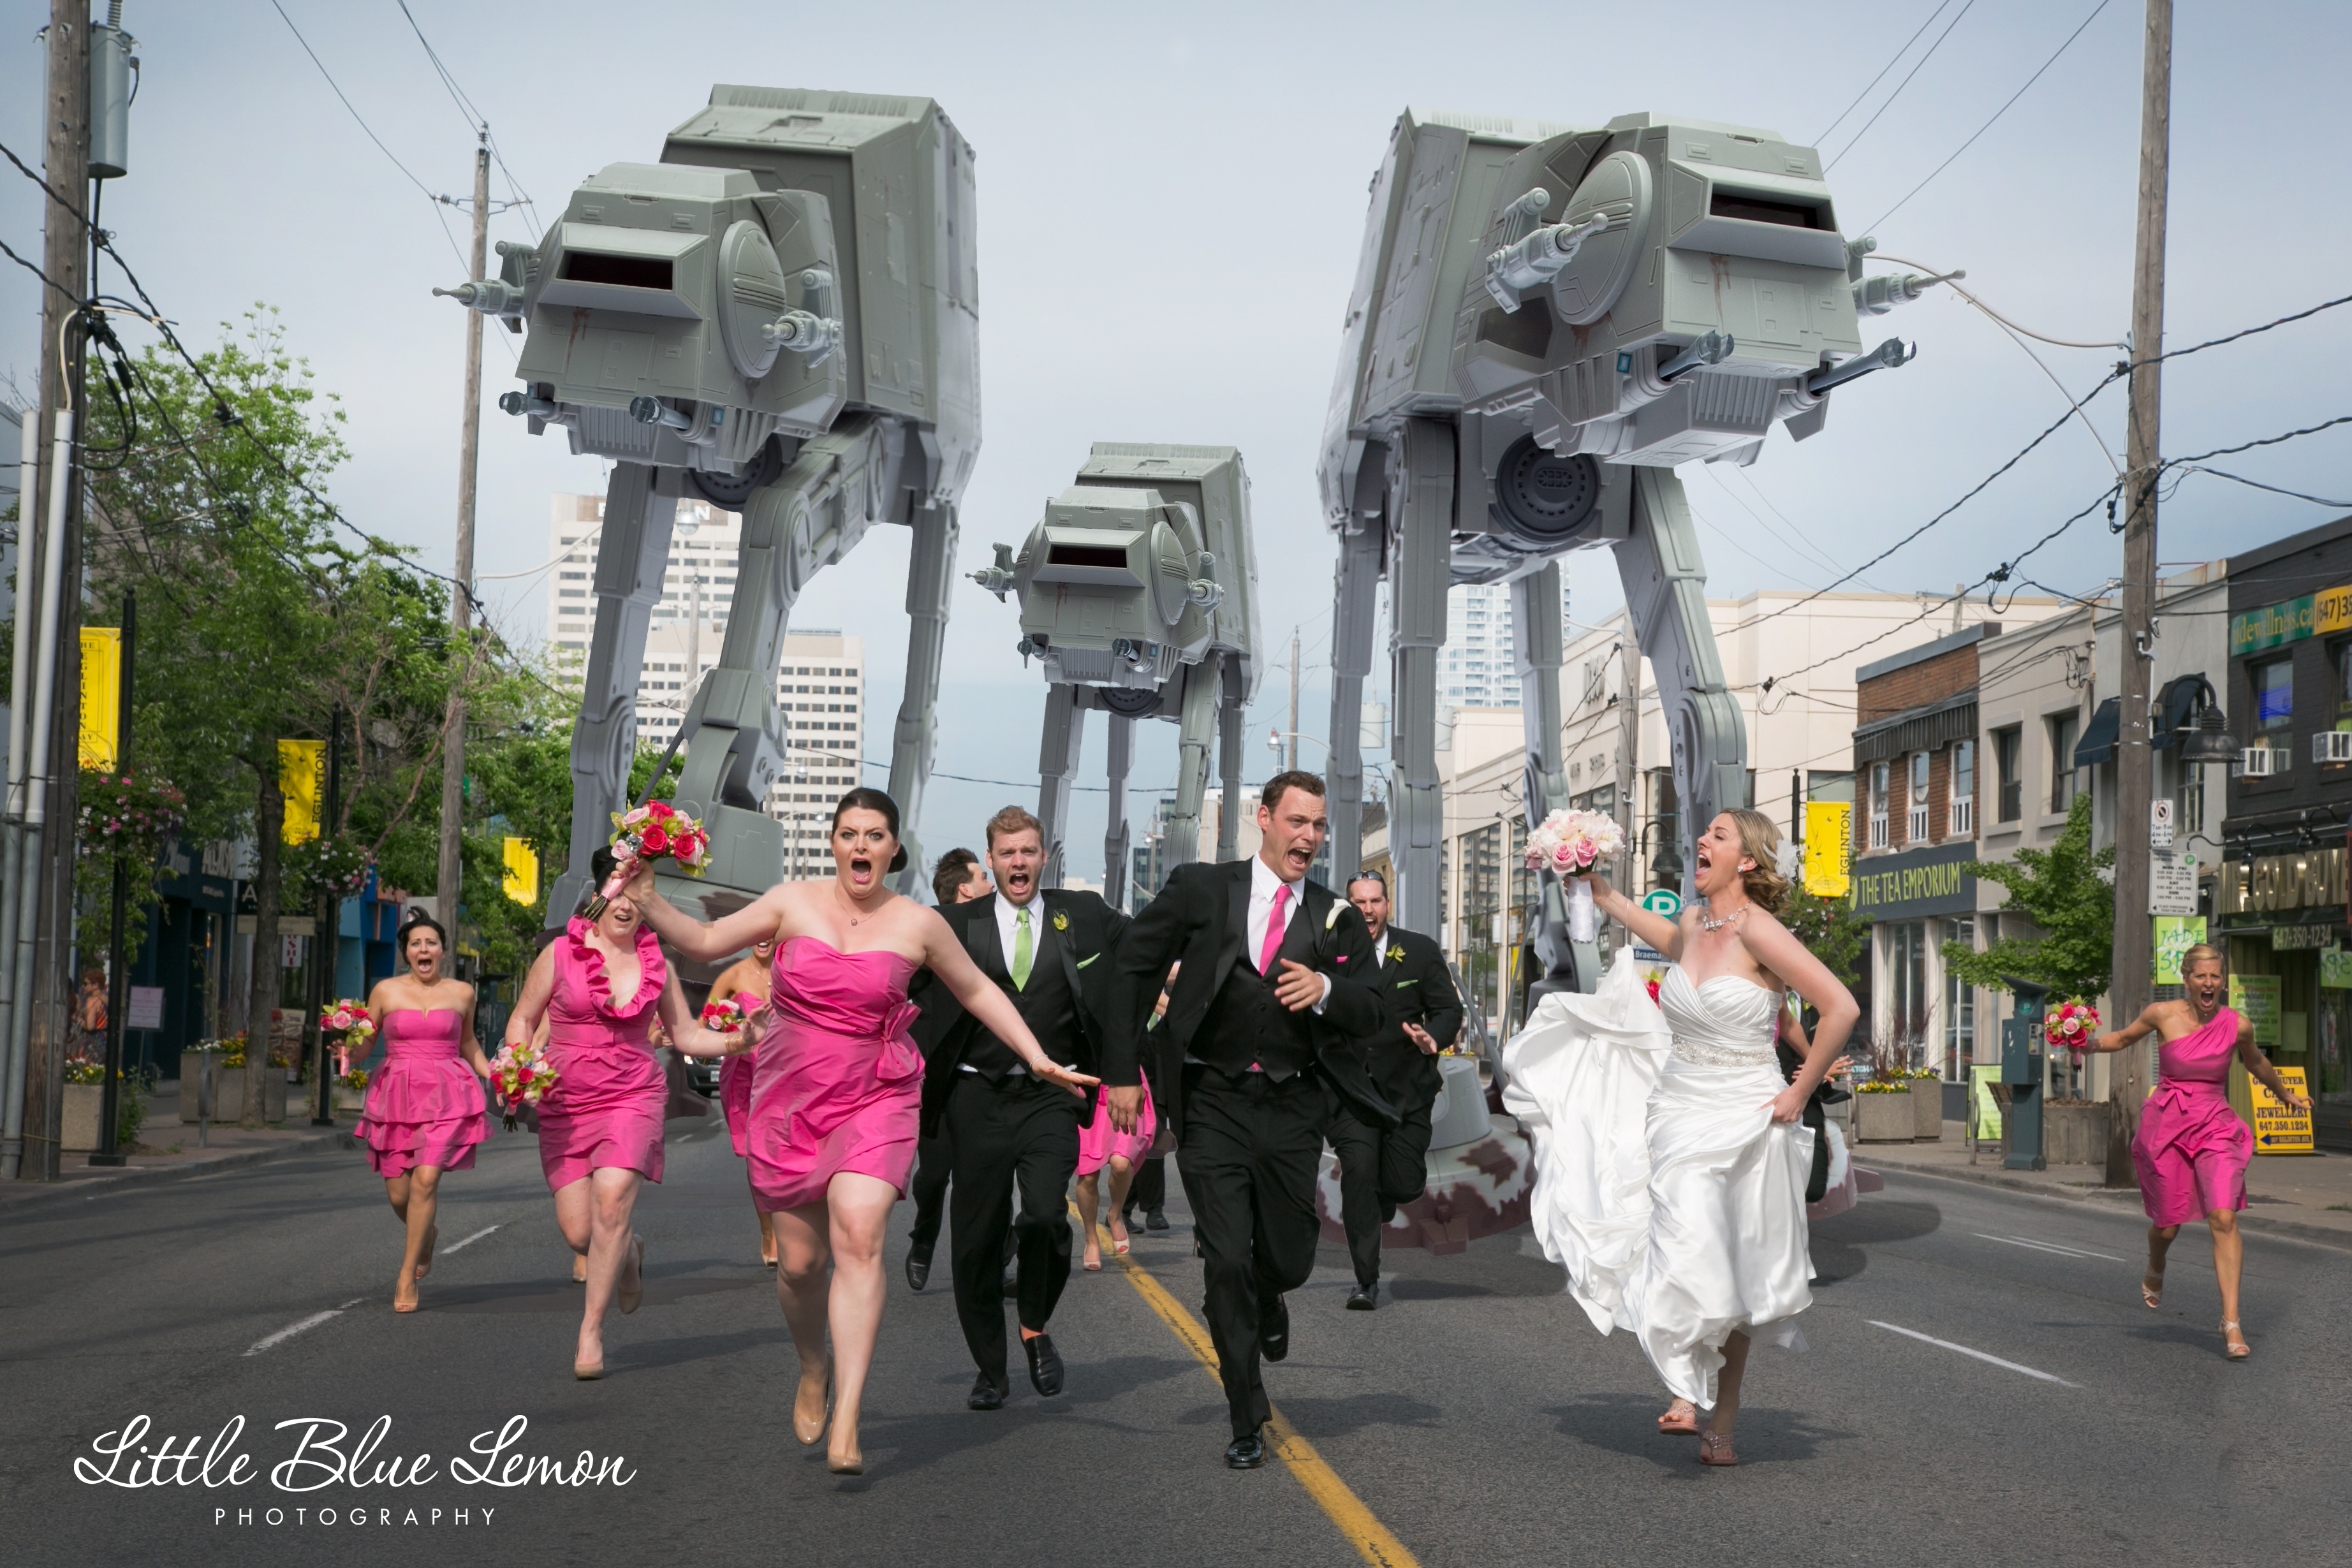 39 star wars 39 wedding photo shows bridal party getting chased by at at walkers huffpost. Black Bedroom Furniture Sets. Home Design Ideas